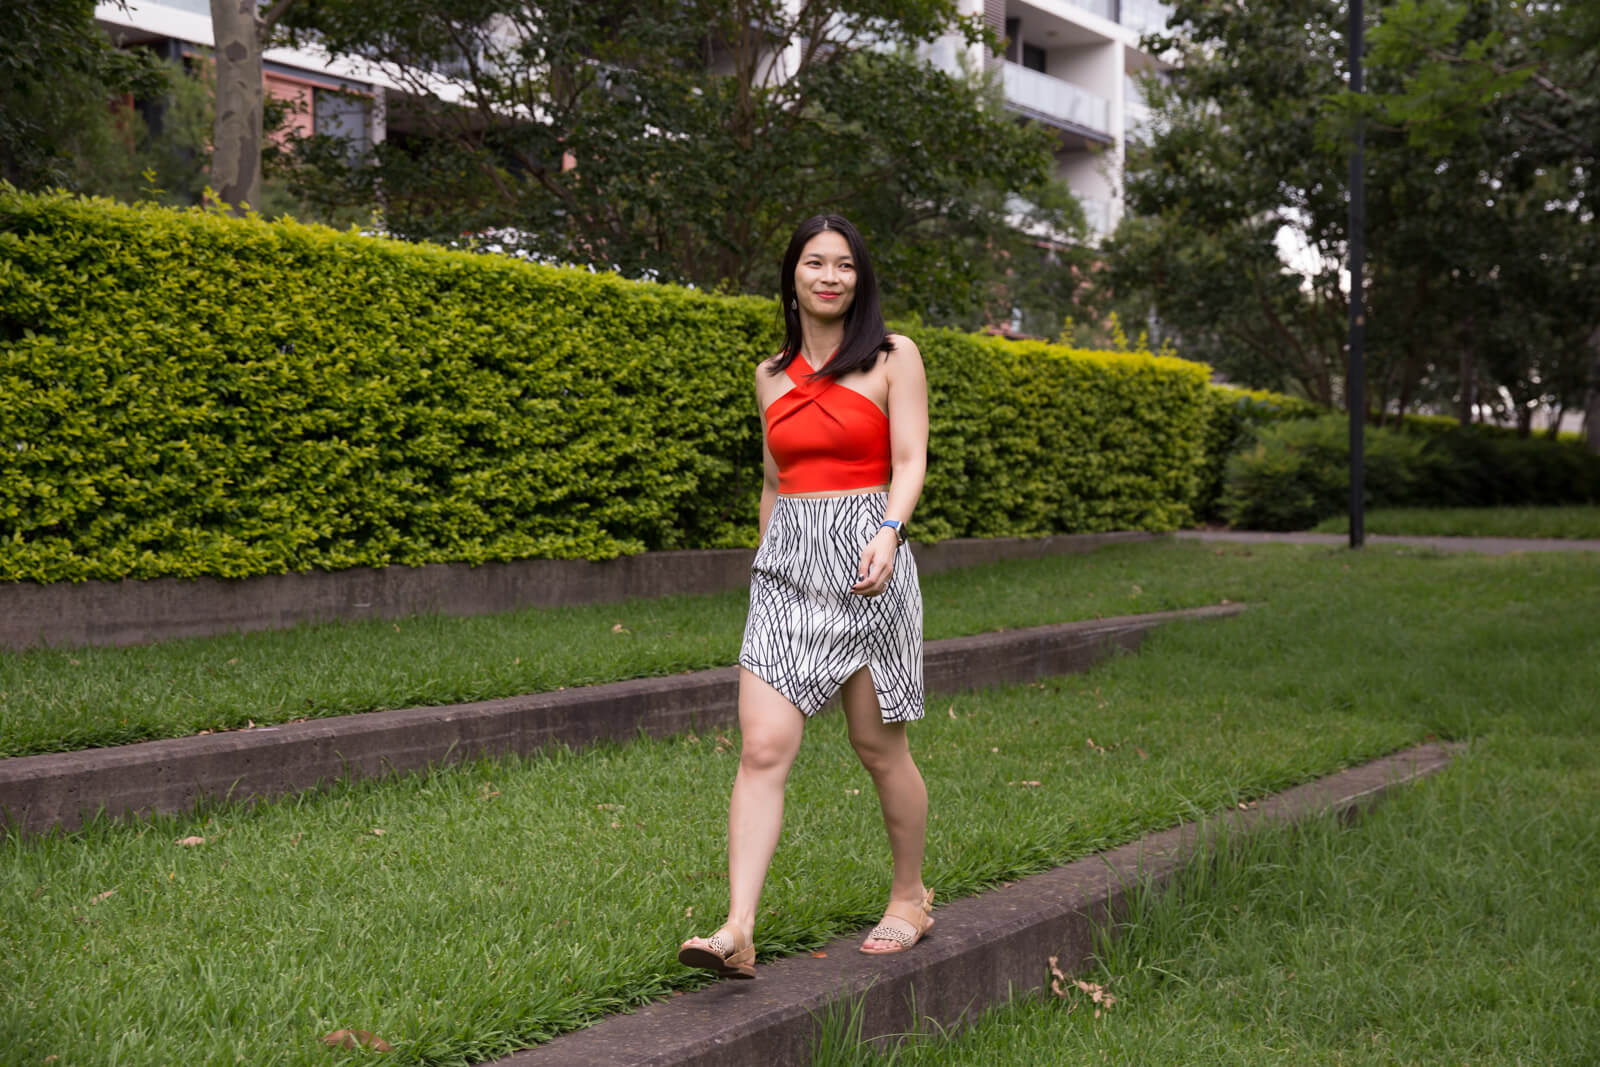 A full body shot of the same woman from other photos in this post, in the same outfit, walking across a concrete step lined with grass.